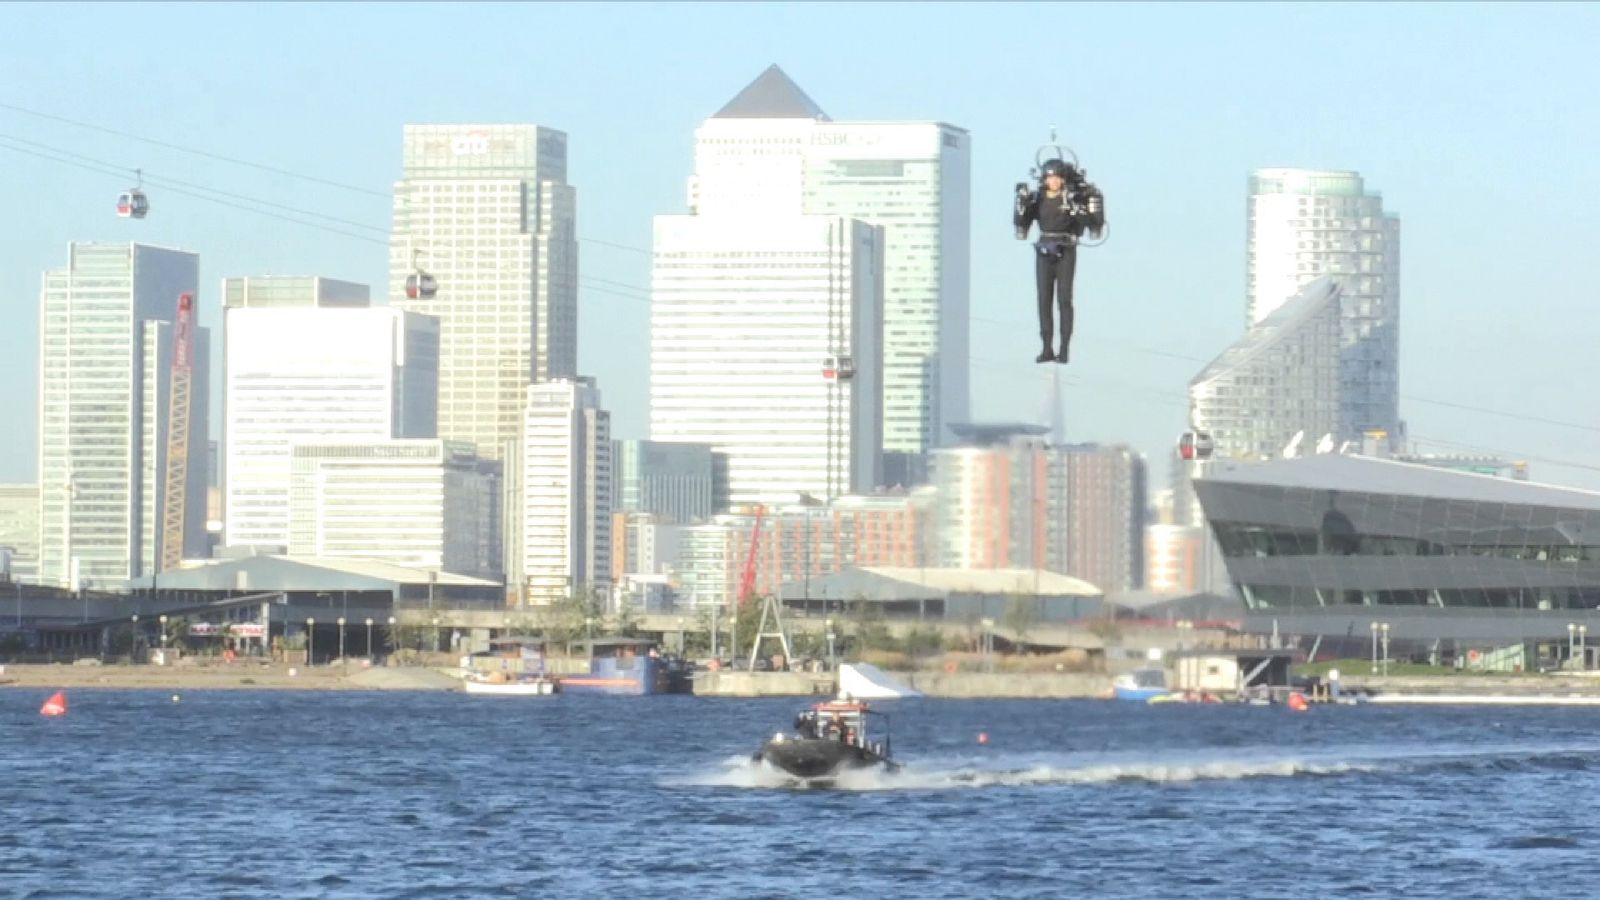 Jetpack flight around Royal Victoria Dock